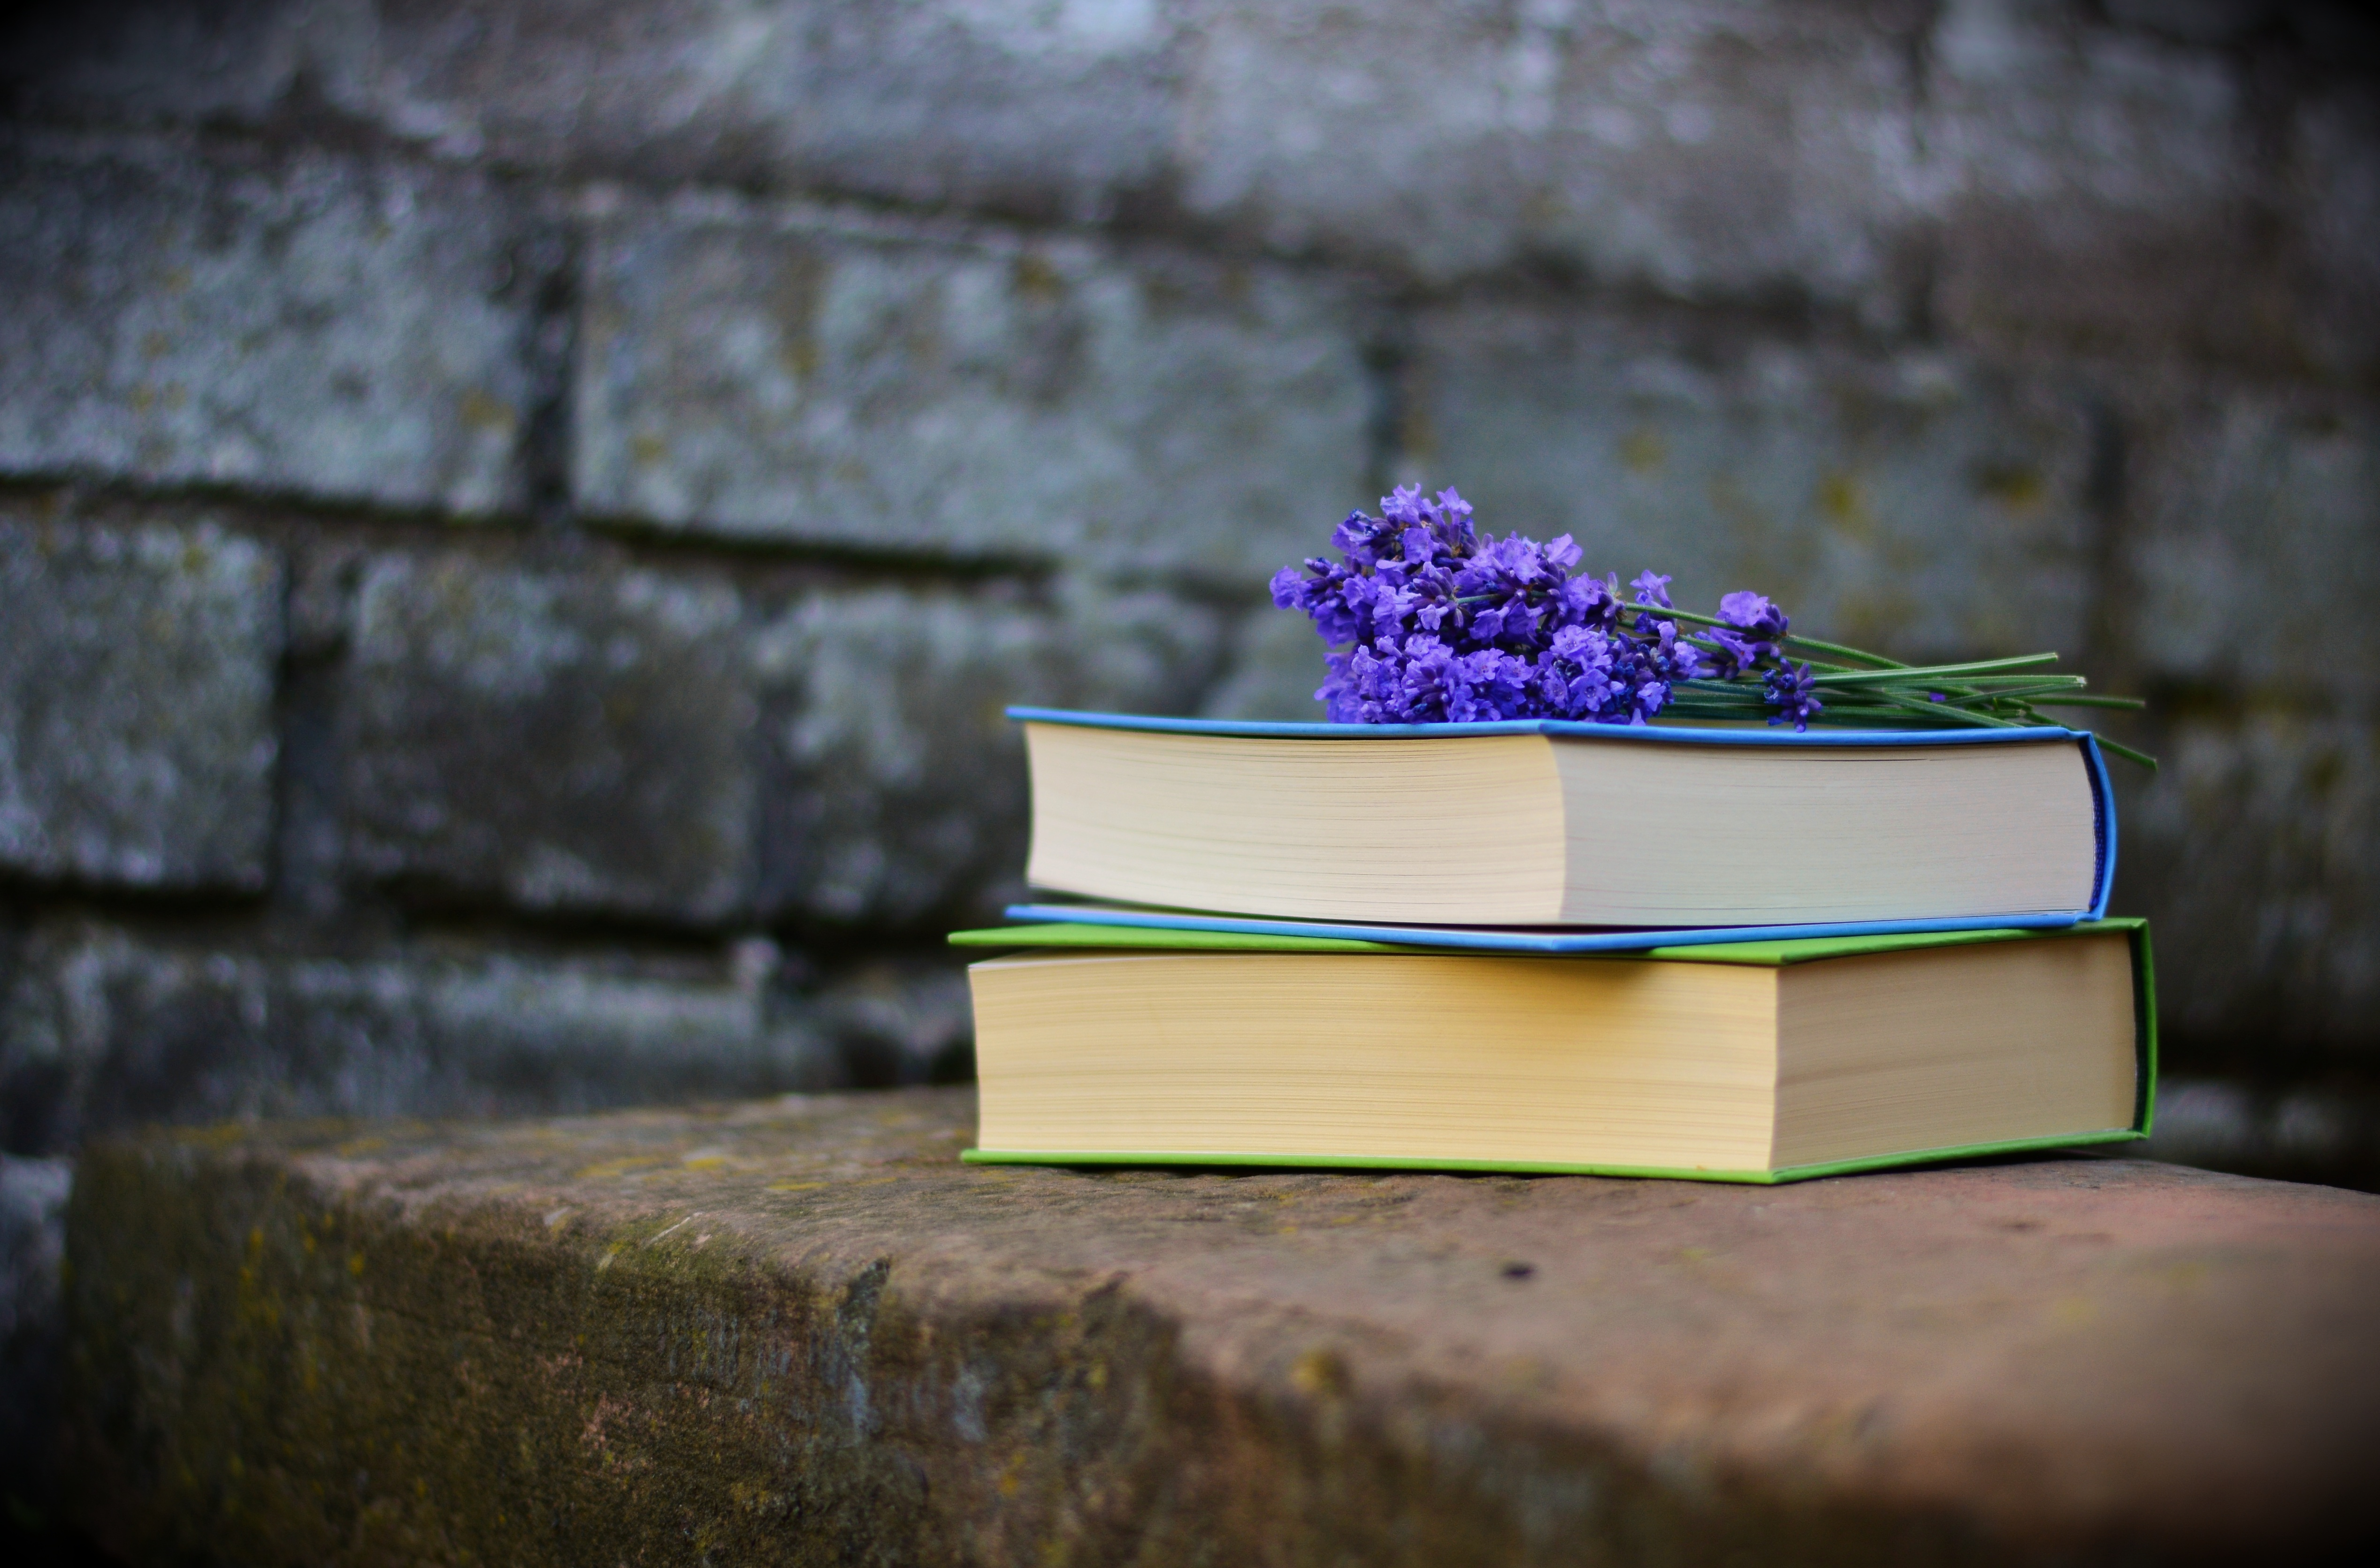 Purple Petaled Flower on Book \